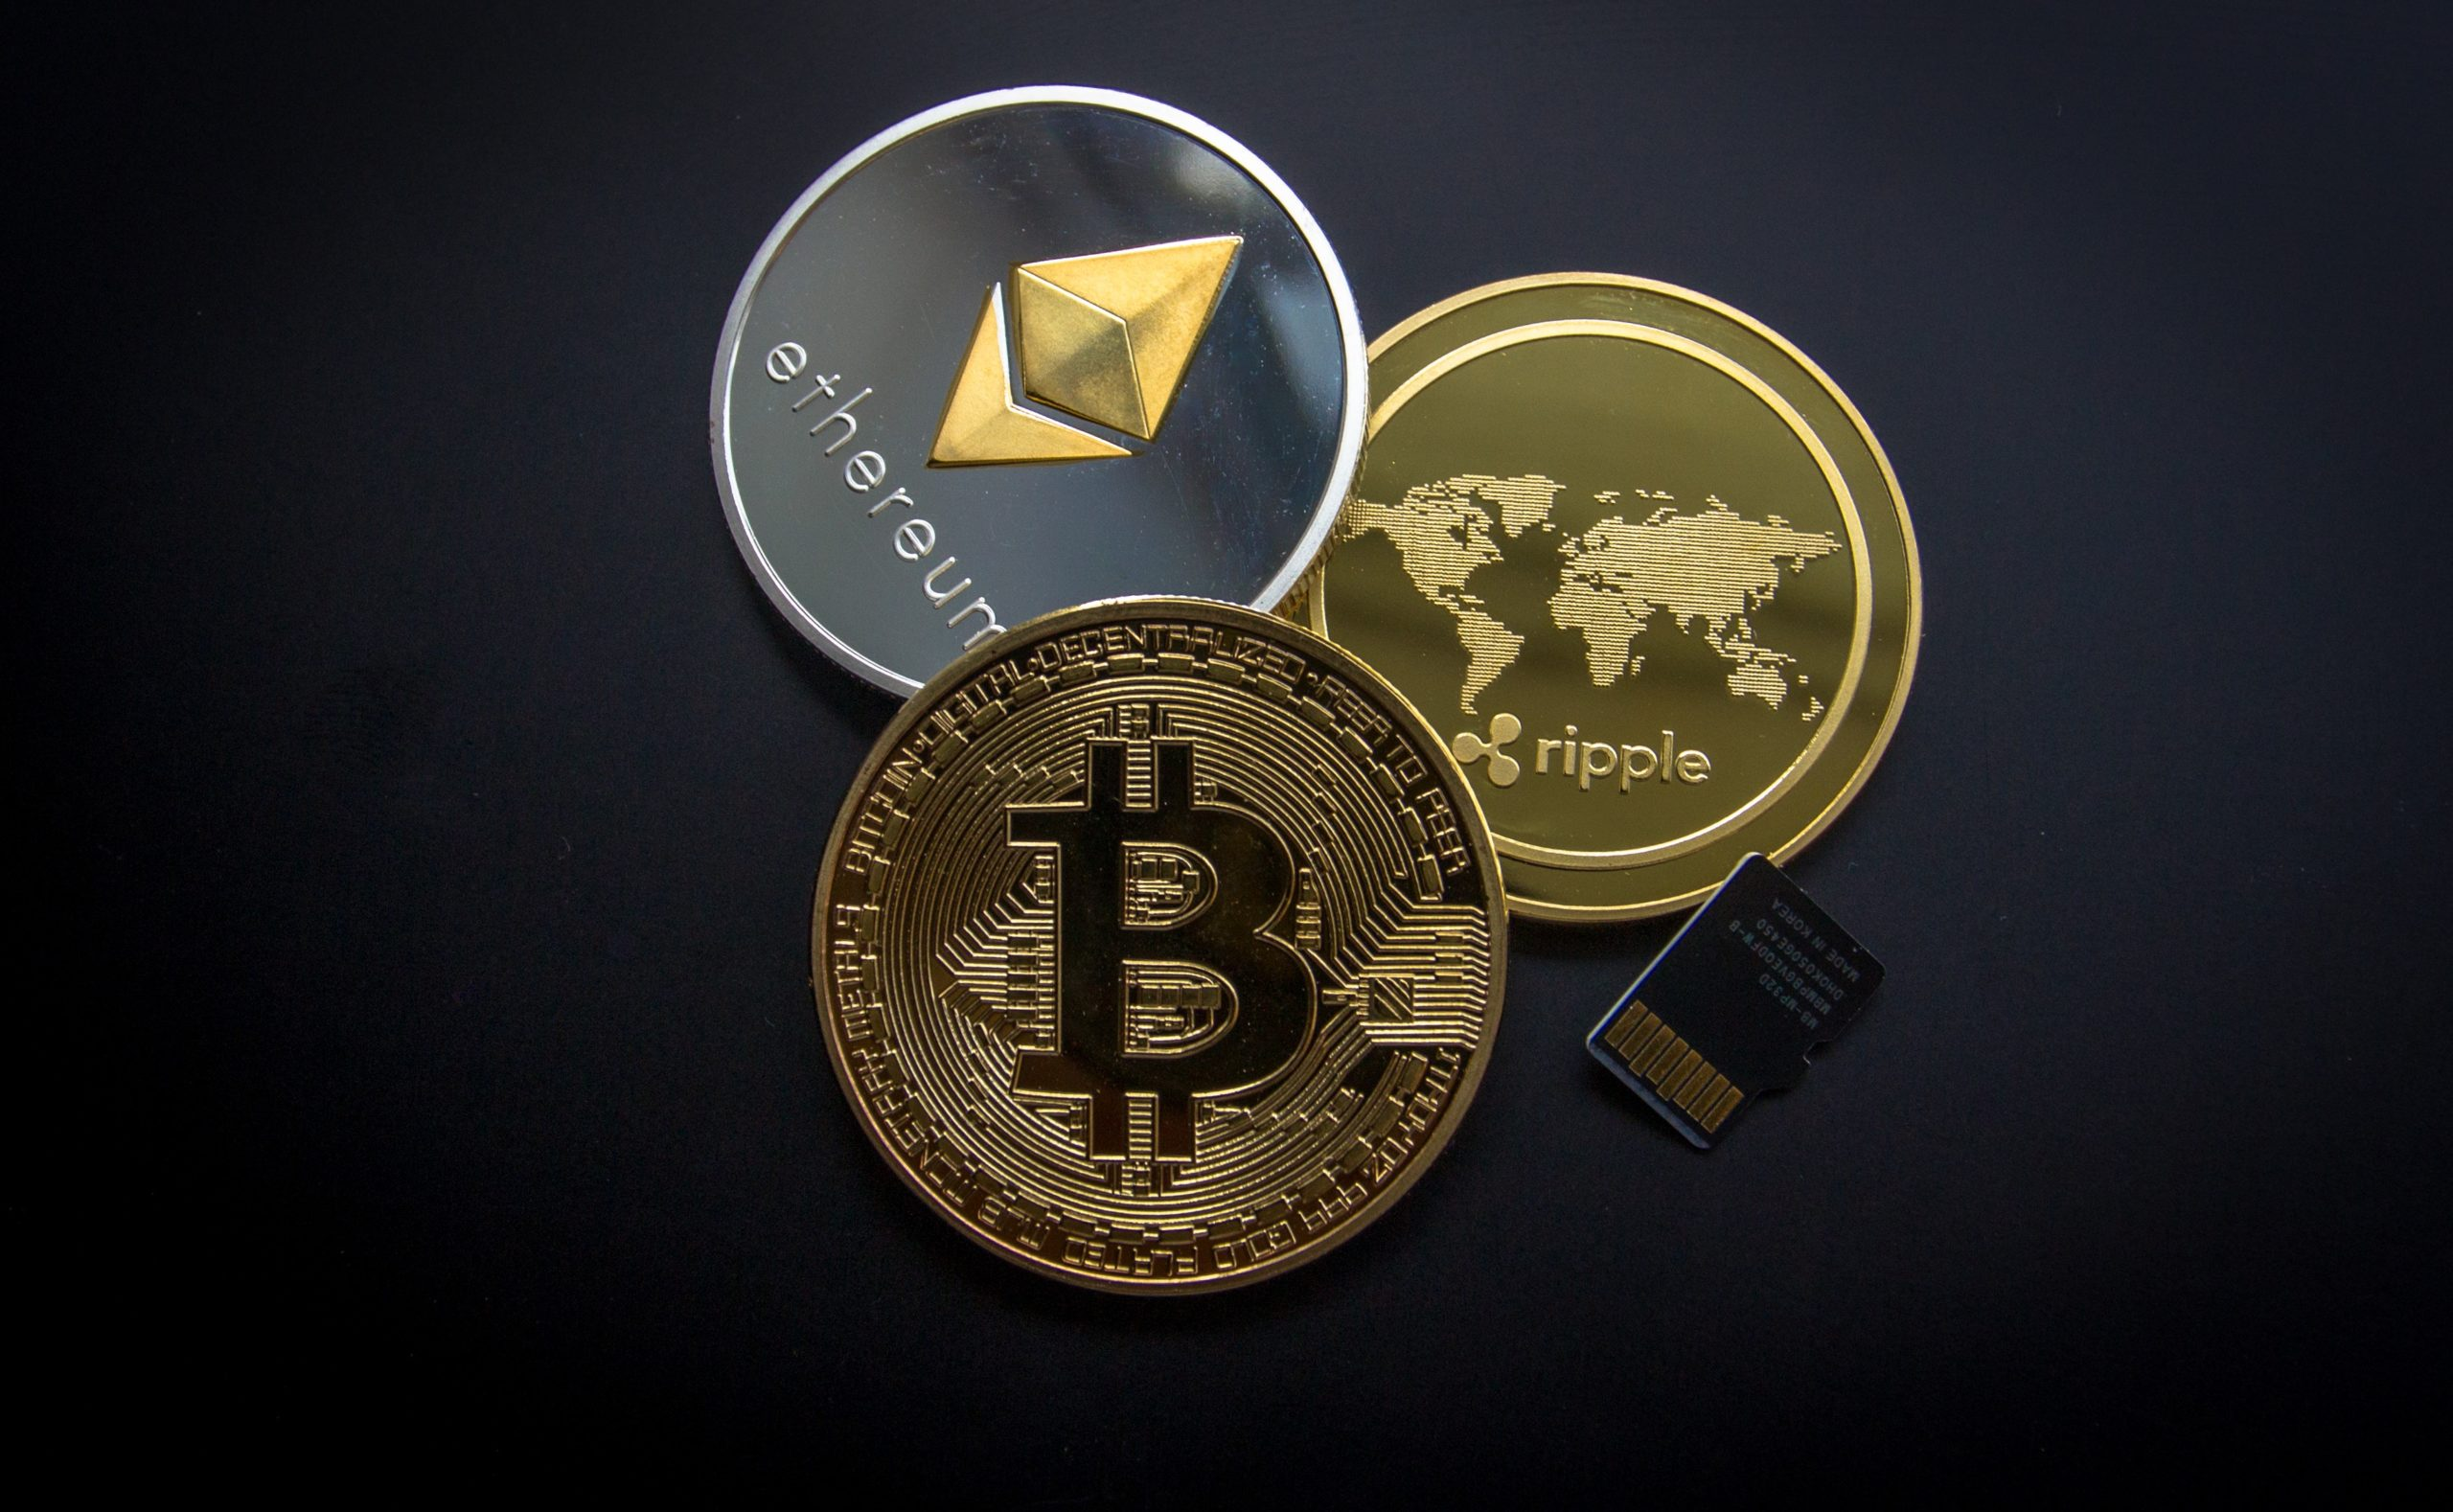 ripple ethereum bitcoin | beincrypto.pl